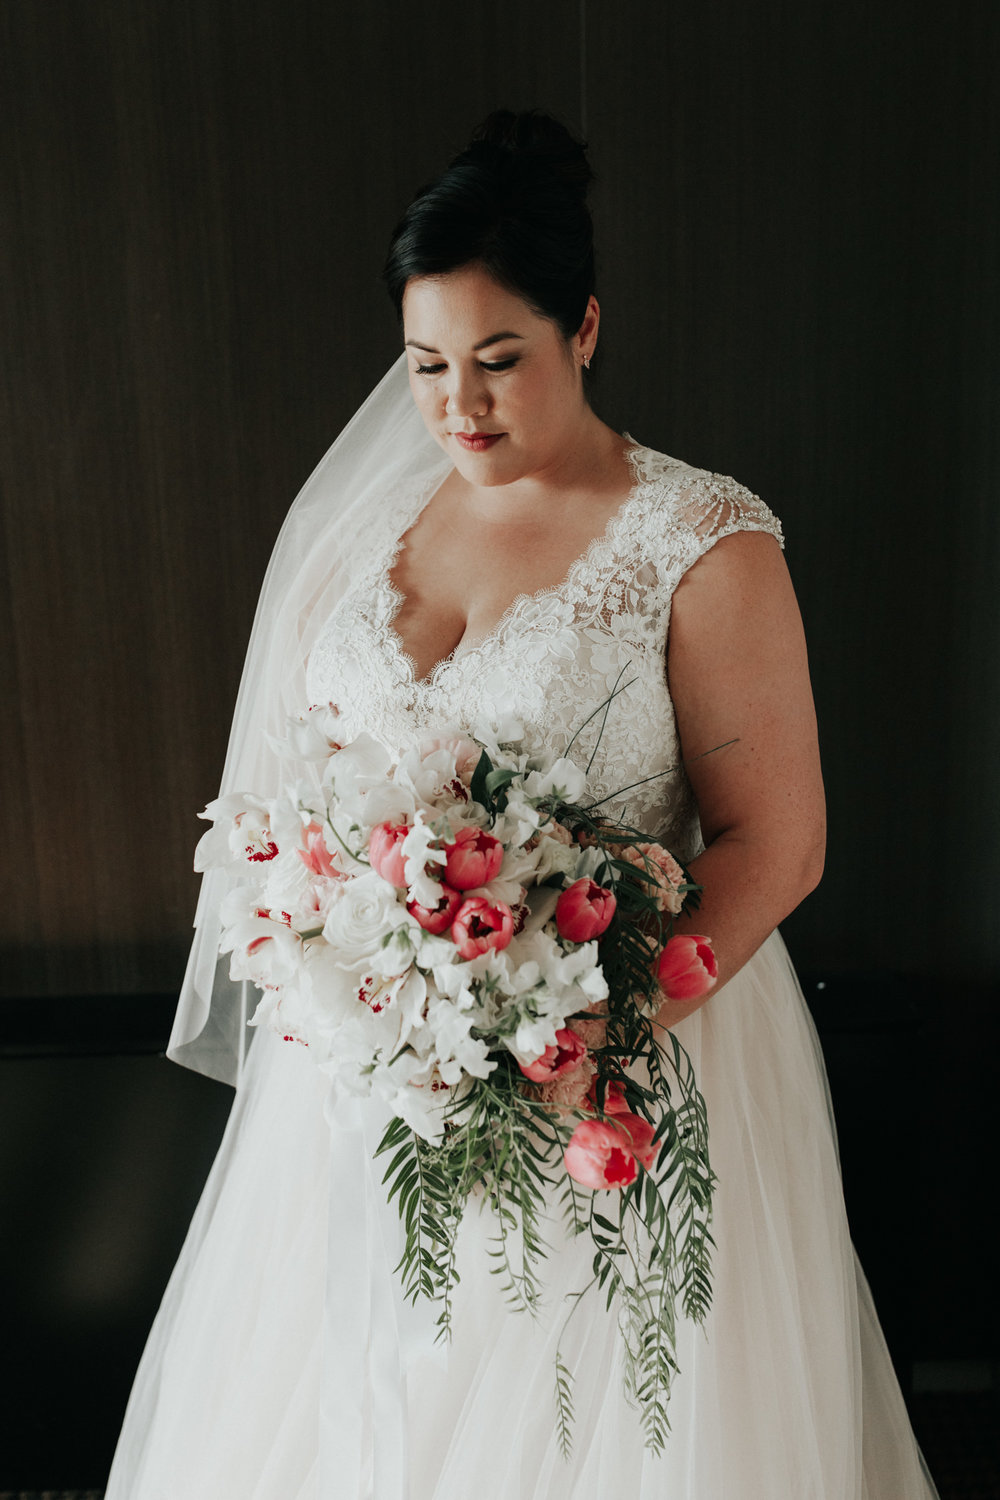 Moxom and Whitney Bouquet, Boathouse Wedding Canberra - Photography by Jenny Wu Straight No Chaser